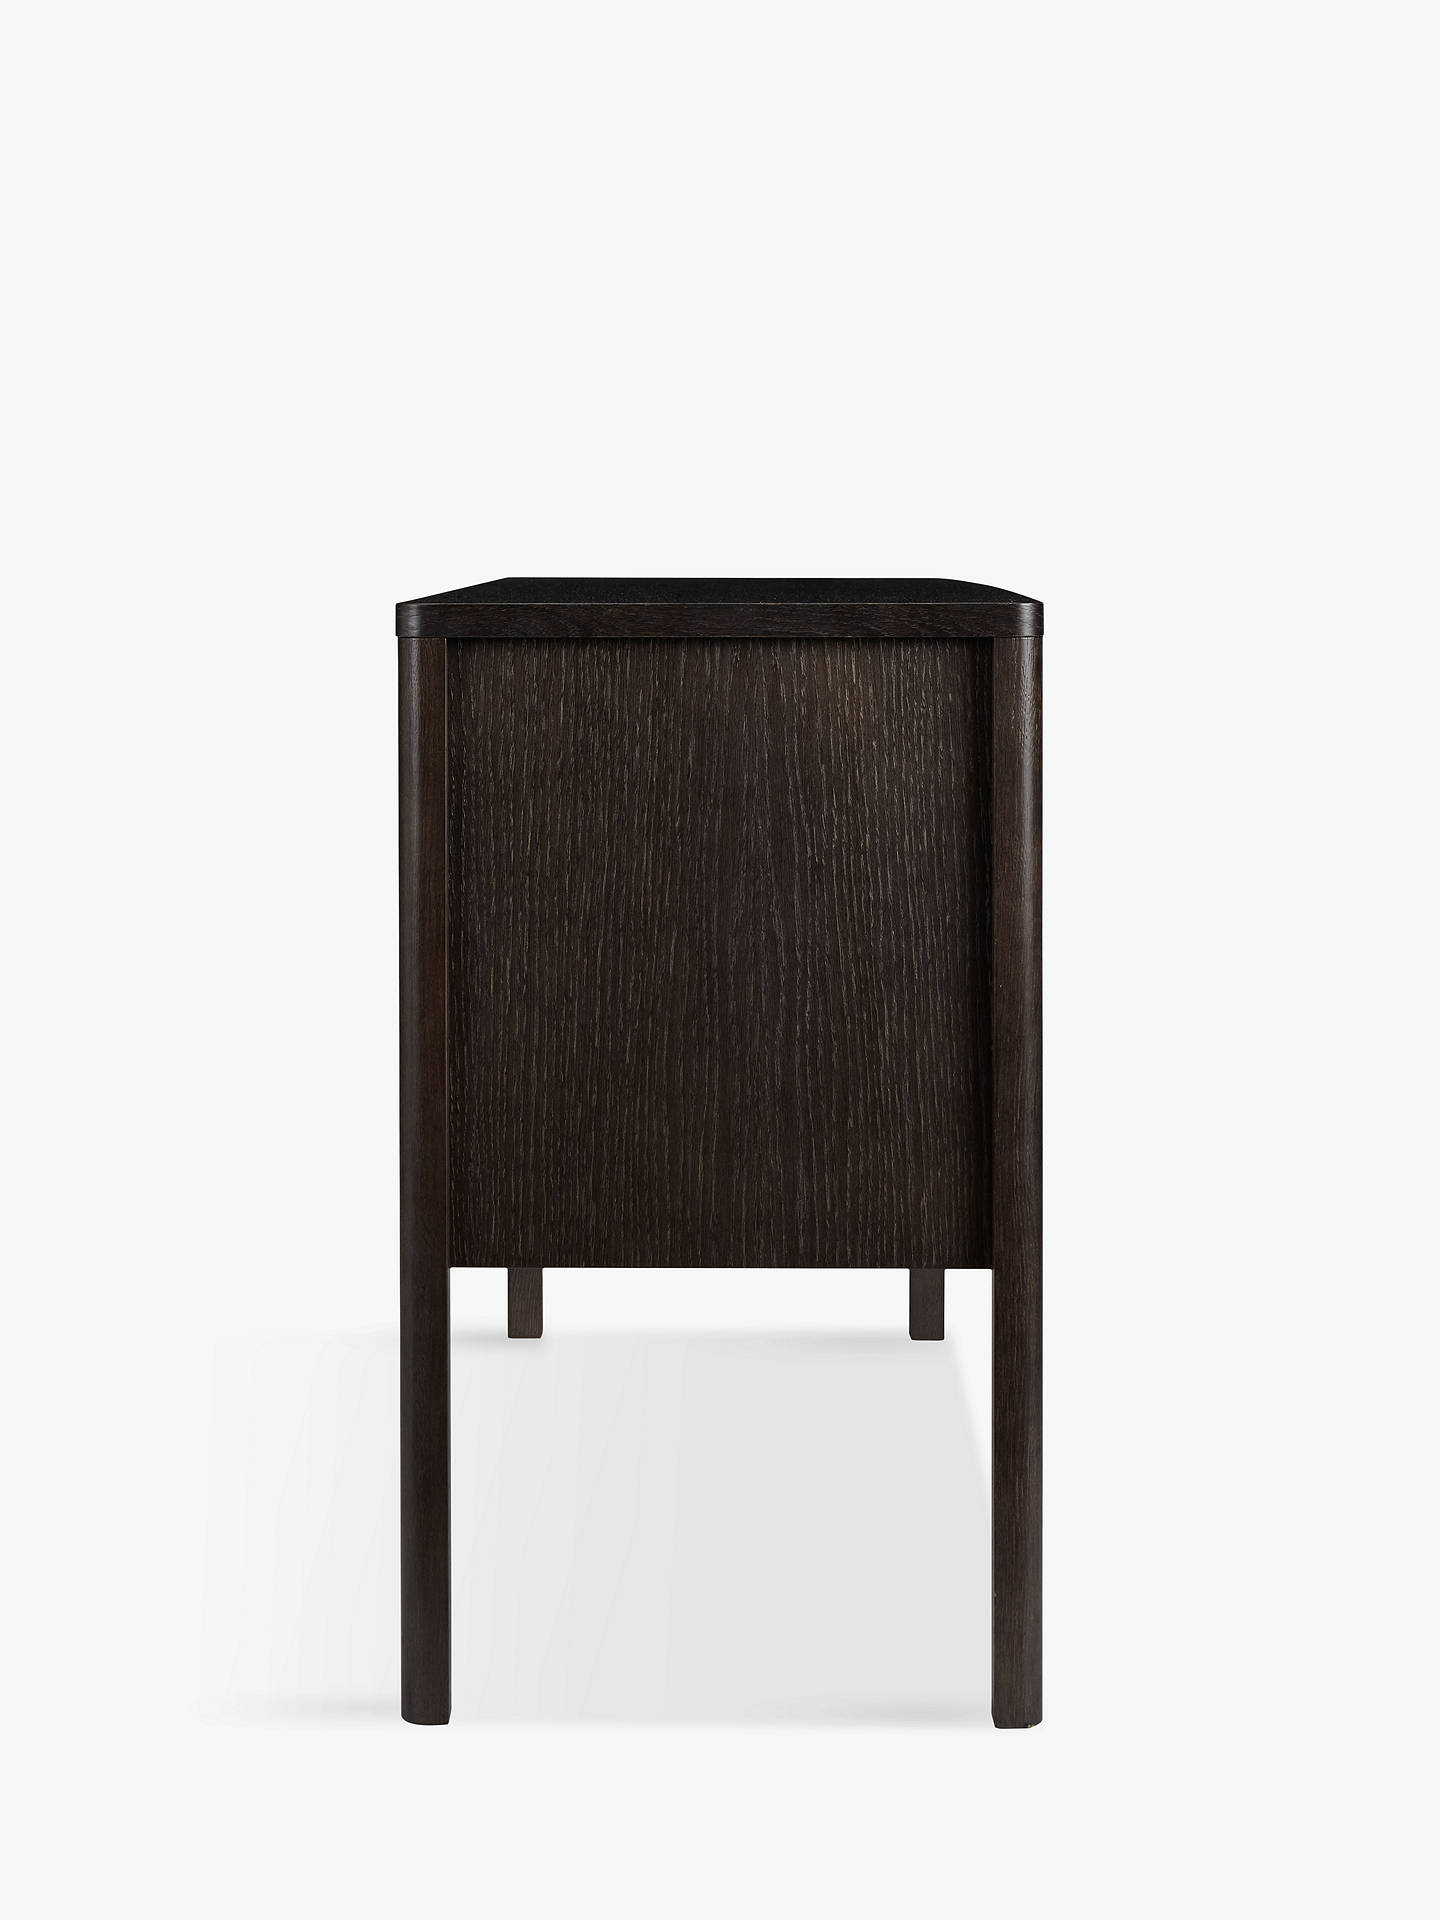 BuyJohn Lewis & Partners Lucente 2 Door/ 3 Drawer Cabinet Online at johnlewis.com